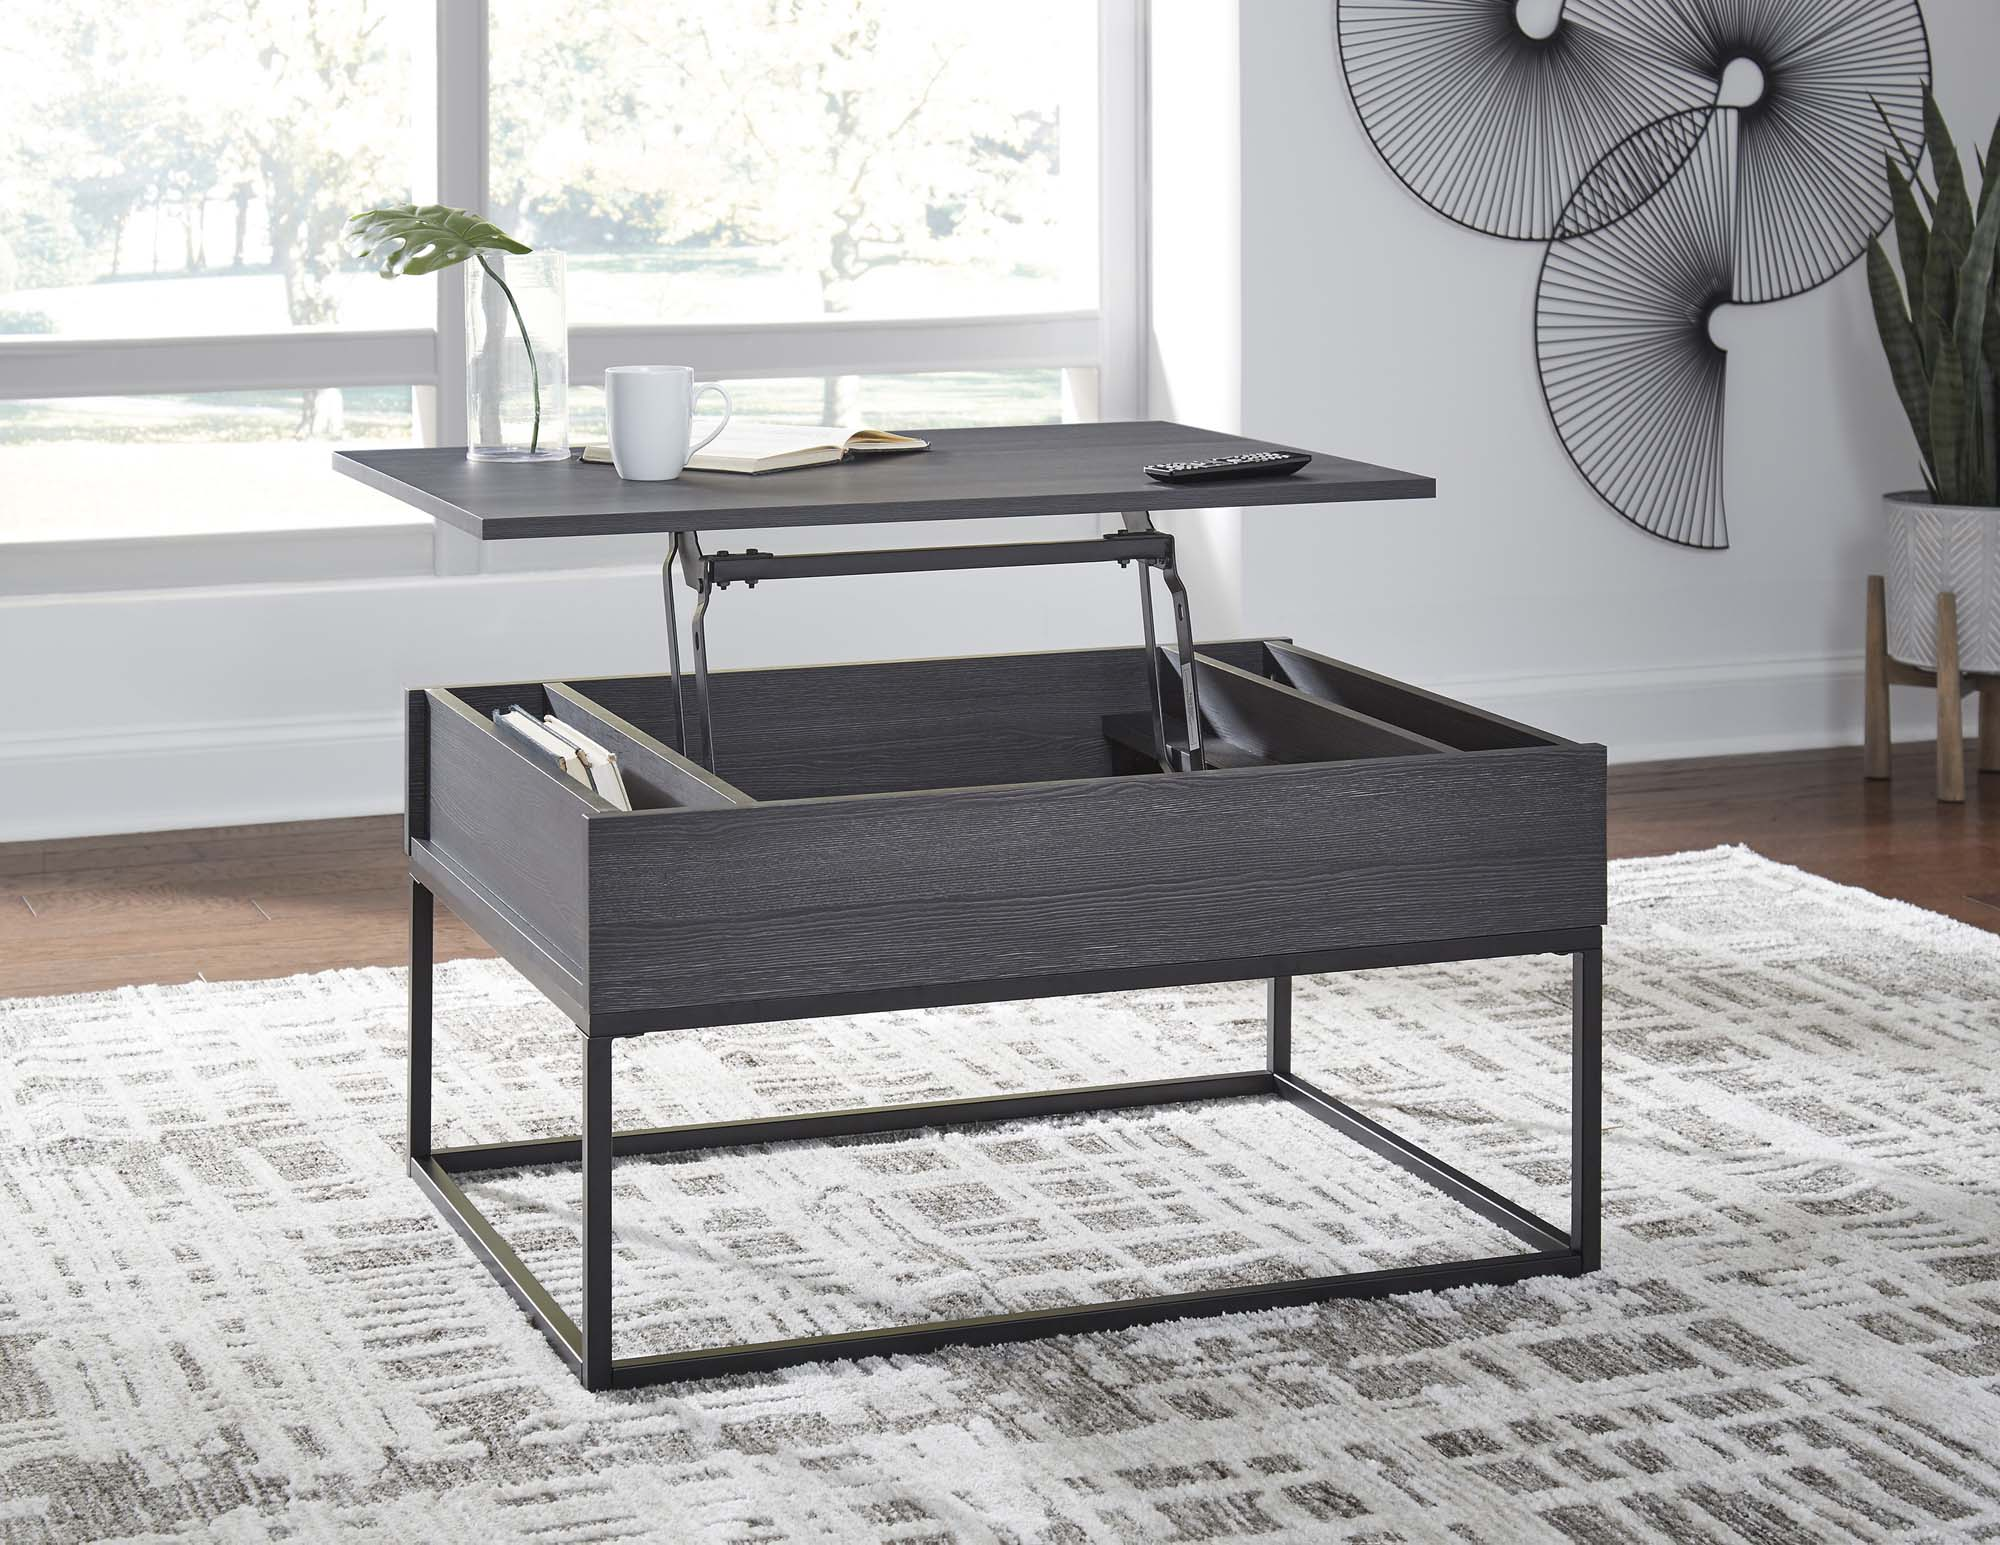 Yarlow Lift Top Coffee Table - MJM Furniture